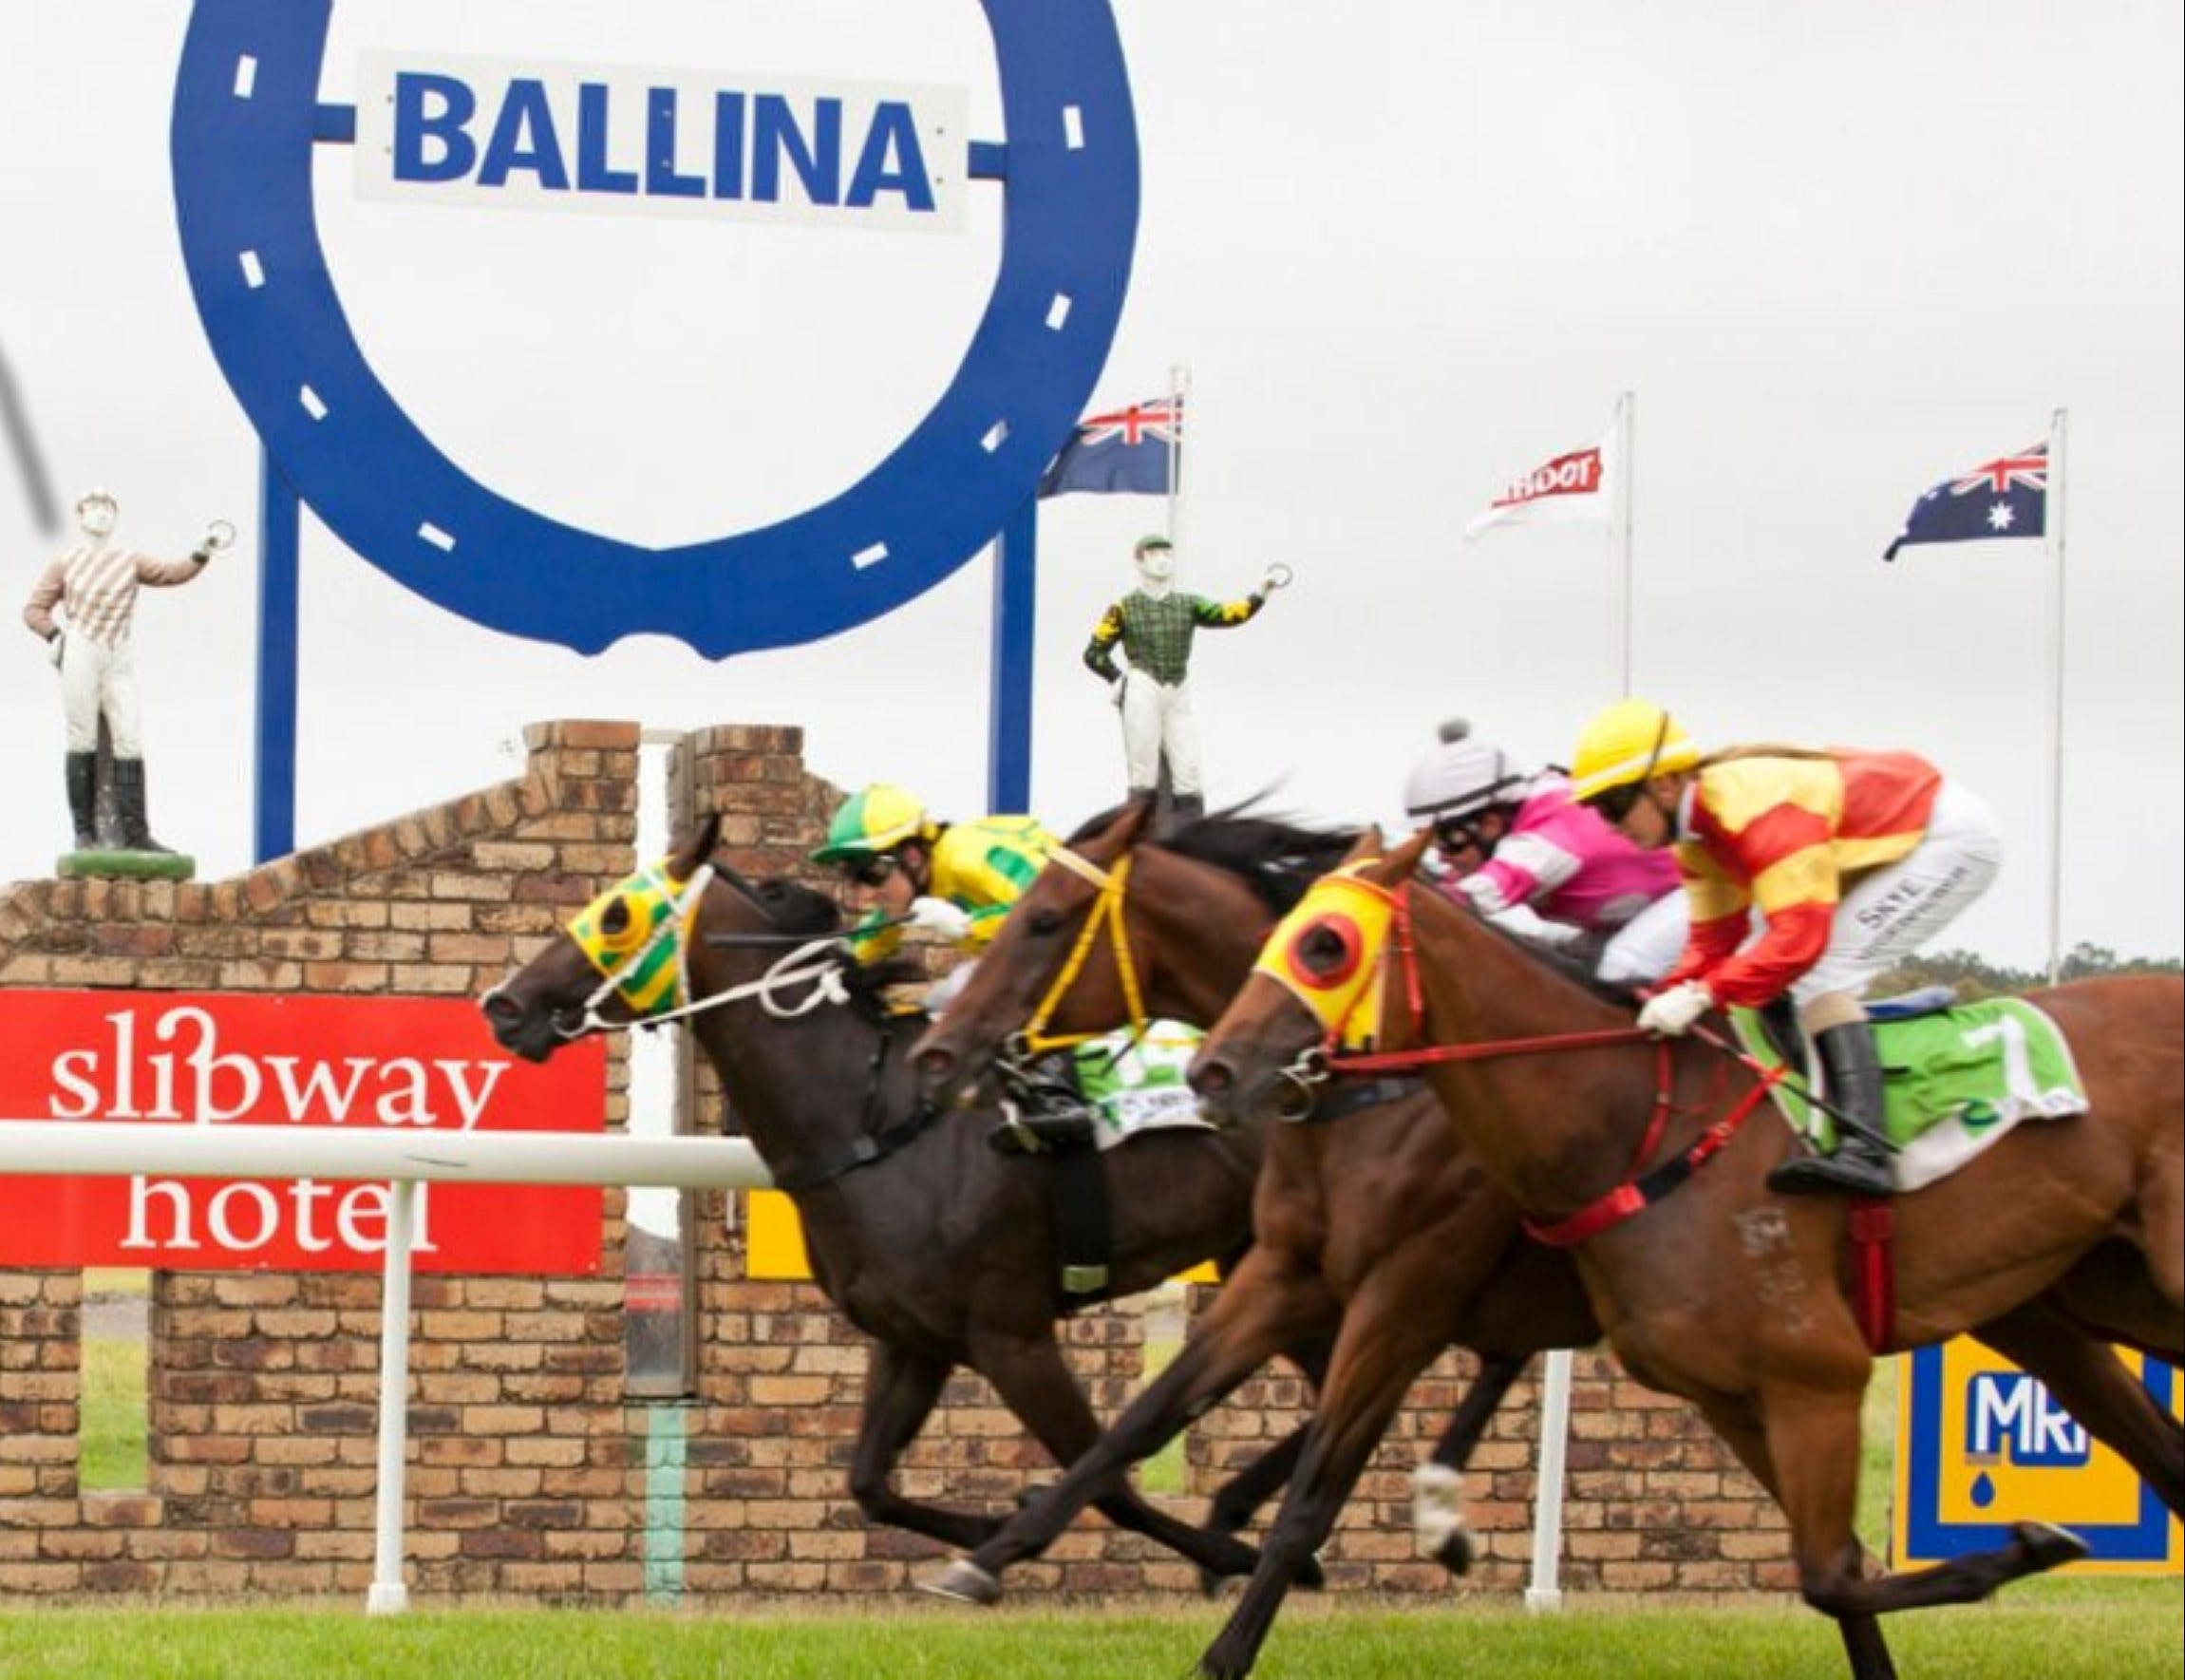 Ballina Boxing Day Races - WA Accommodation